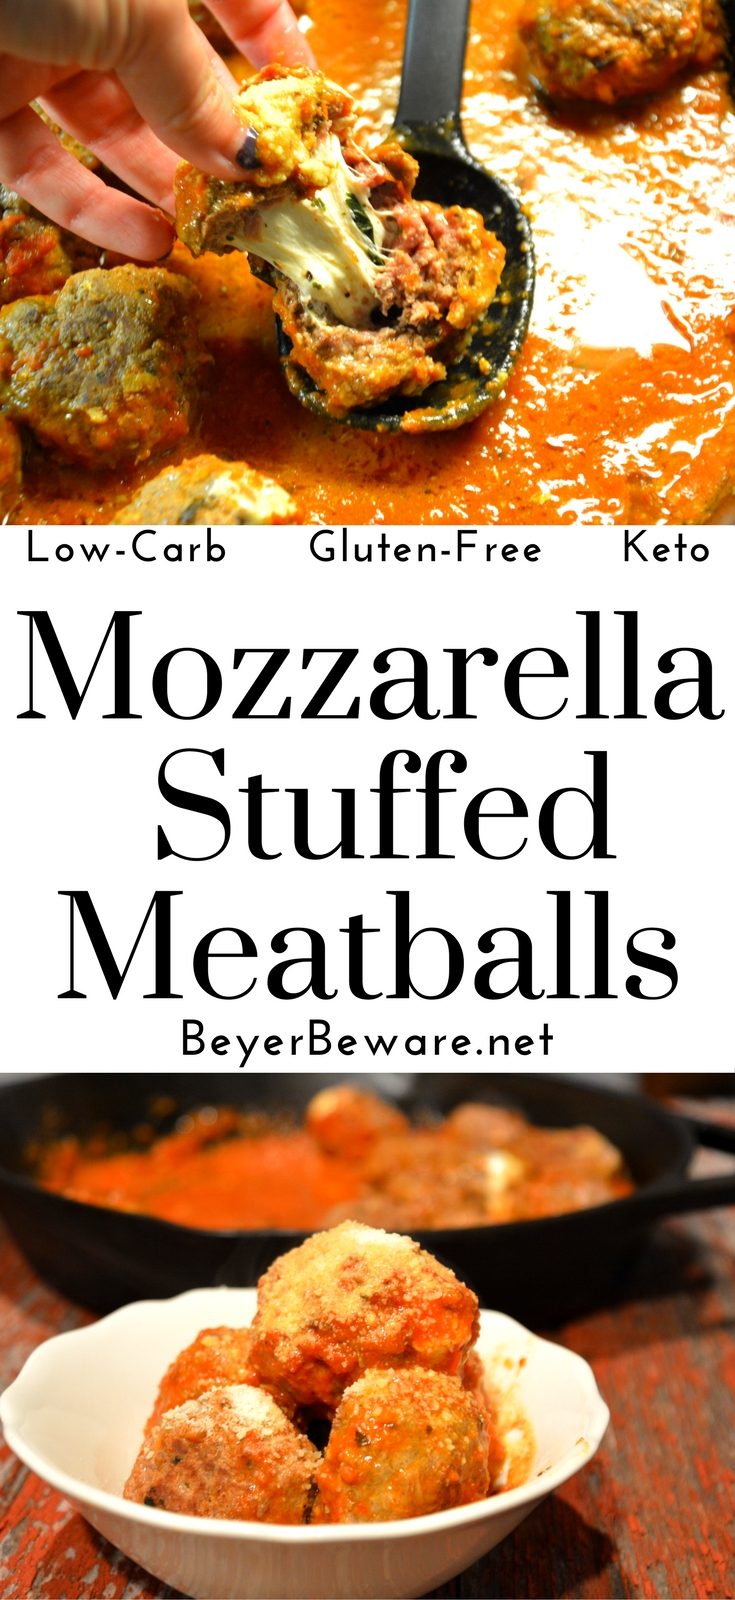 These mozzarella stuffed meatballs are a must make. Tonight. These can be a low-carb and gluten free meal or served as spaghetti and meatballs.